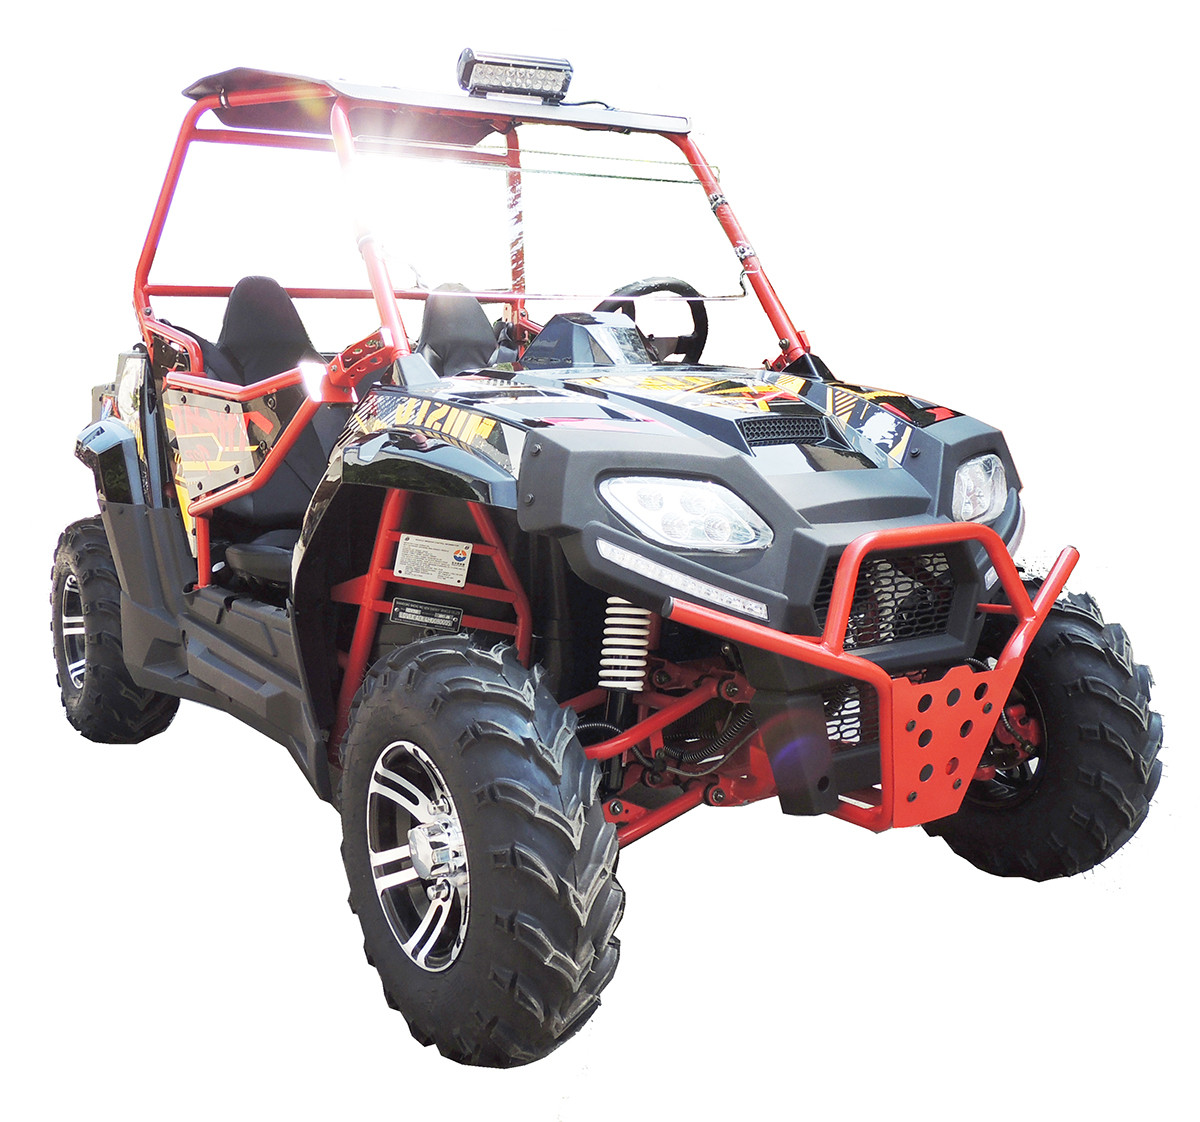 Fang Power Blade 150cc Utv Side X Side